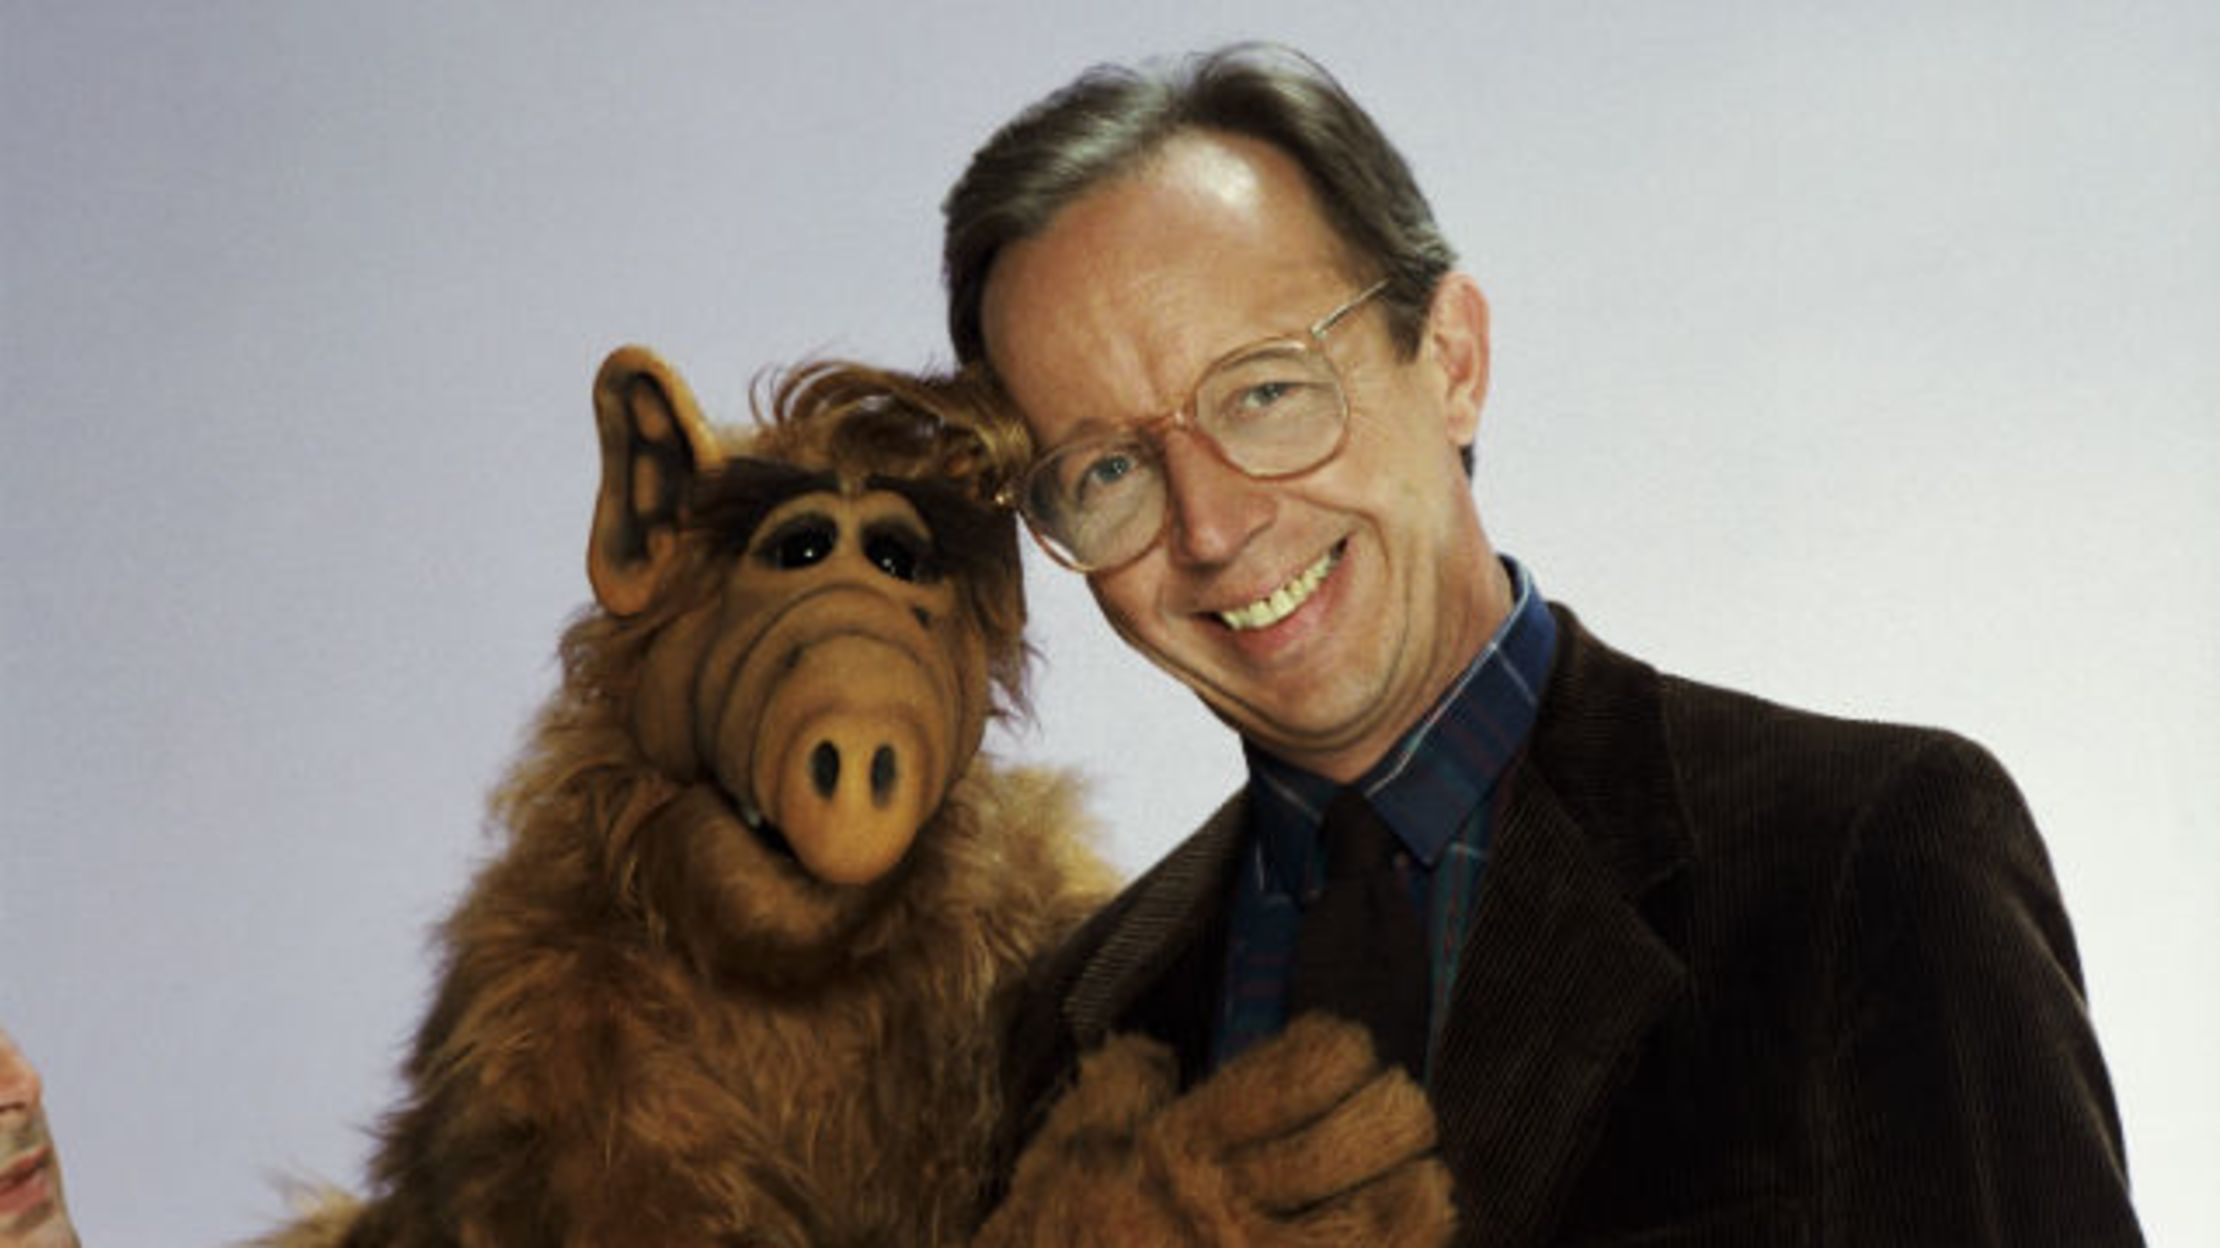 Out of This World: An Oral History of Alf (2016)